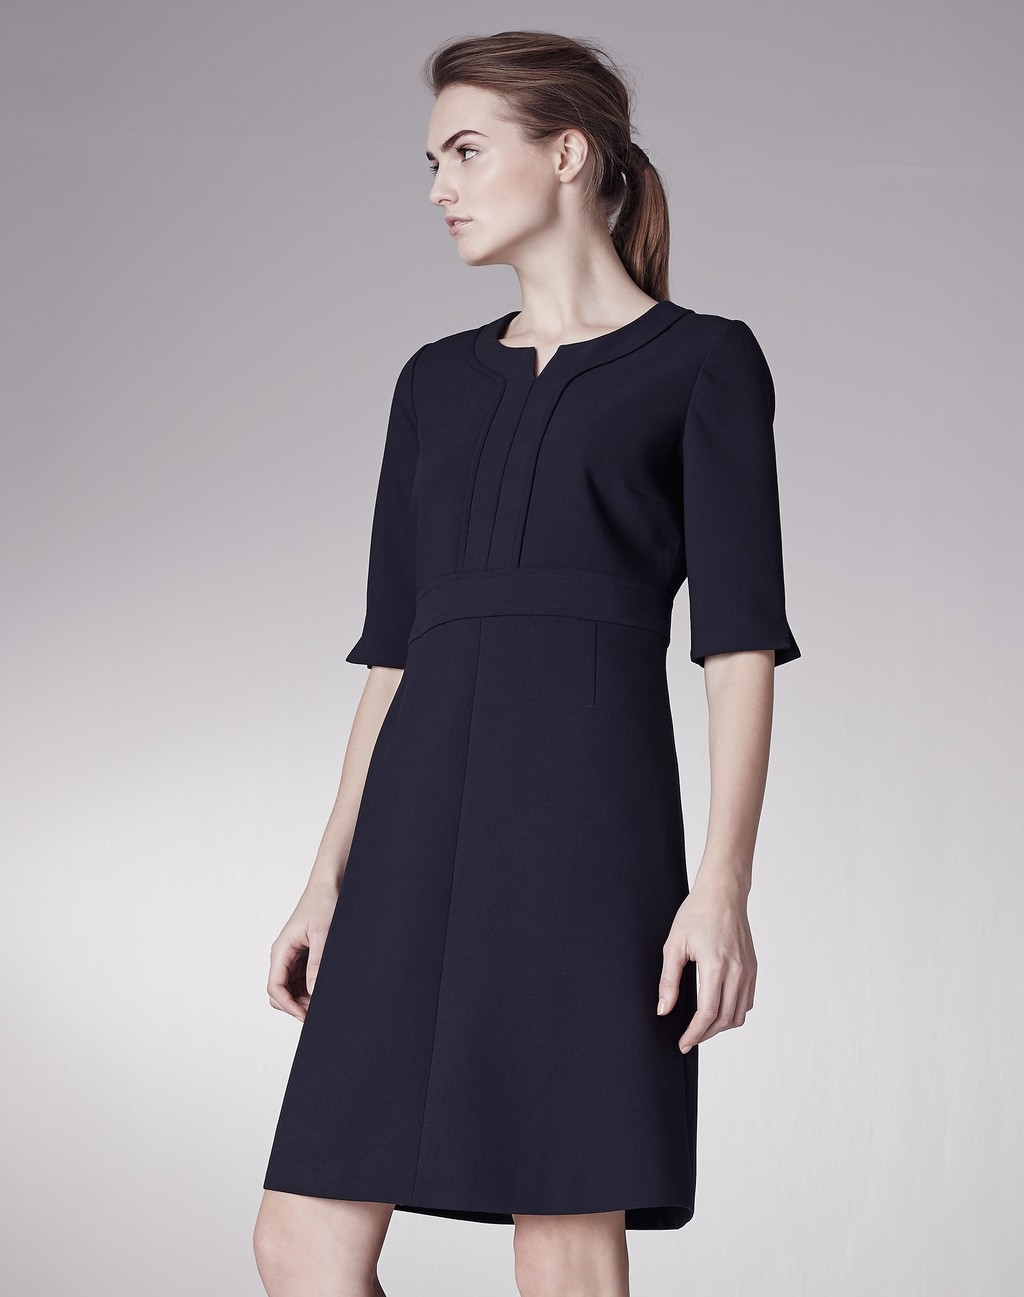 Top Stitch A Line Dress Navy - style: shift; neckline: round neck; pattern: plain; predominant colour: navy; occasions: work, occasion; length: just above the knee; fit: soft a-line; fibres: polyester/polyamide - mix; sleeve length: 3/4 length; sleeve style: standard; pattern type: fabric; texture group: woven light midweight; season: a/w 2015; wardrobe: investment